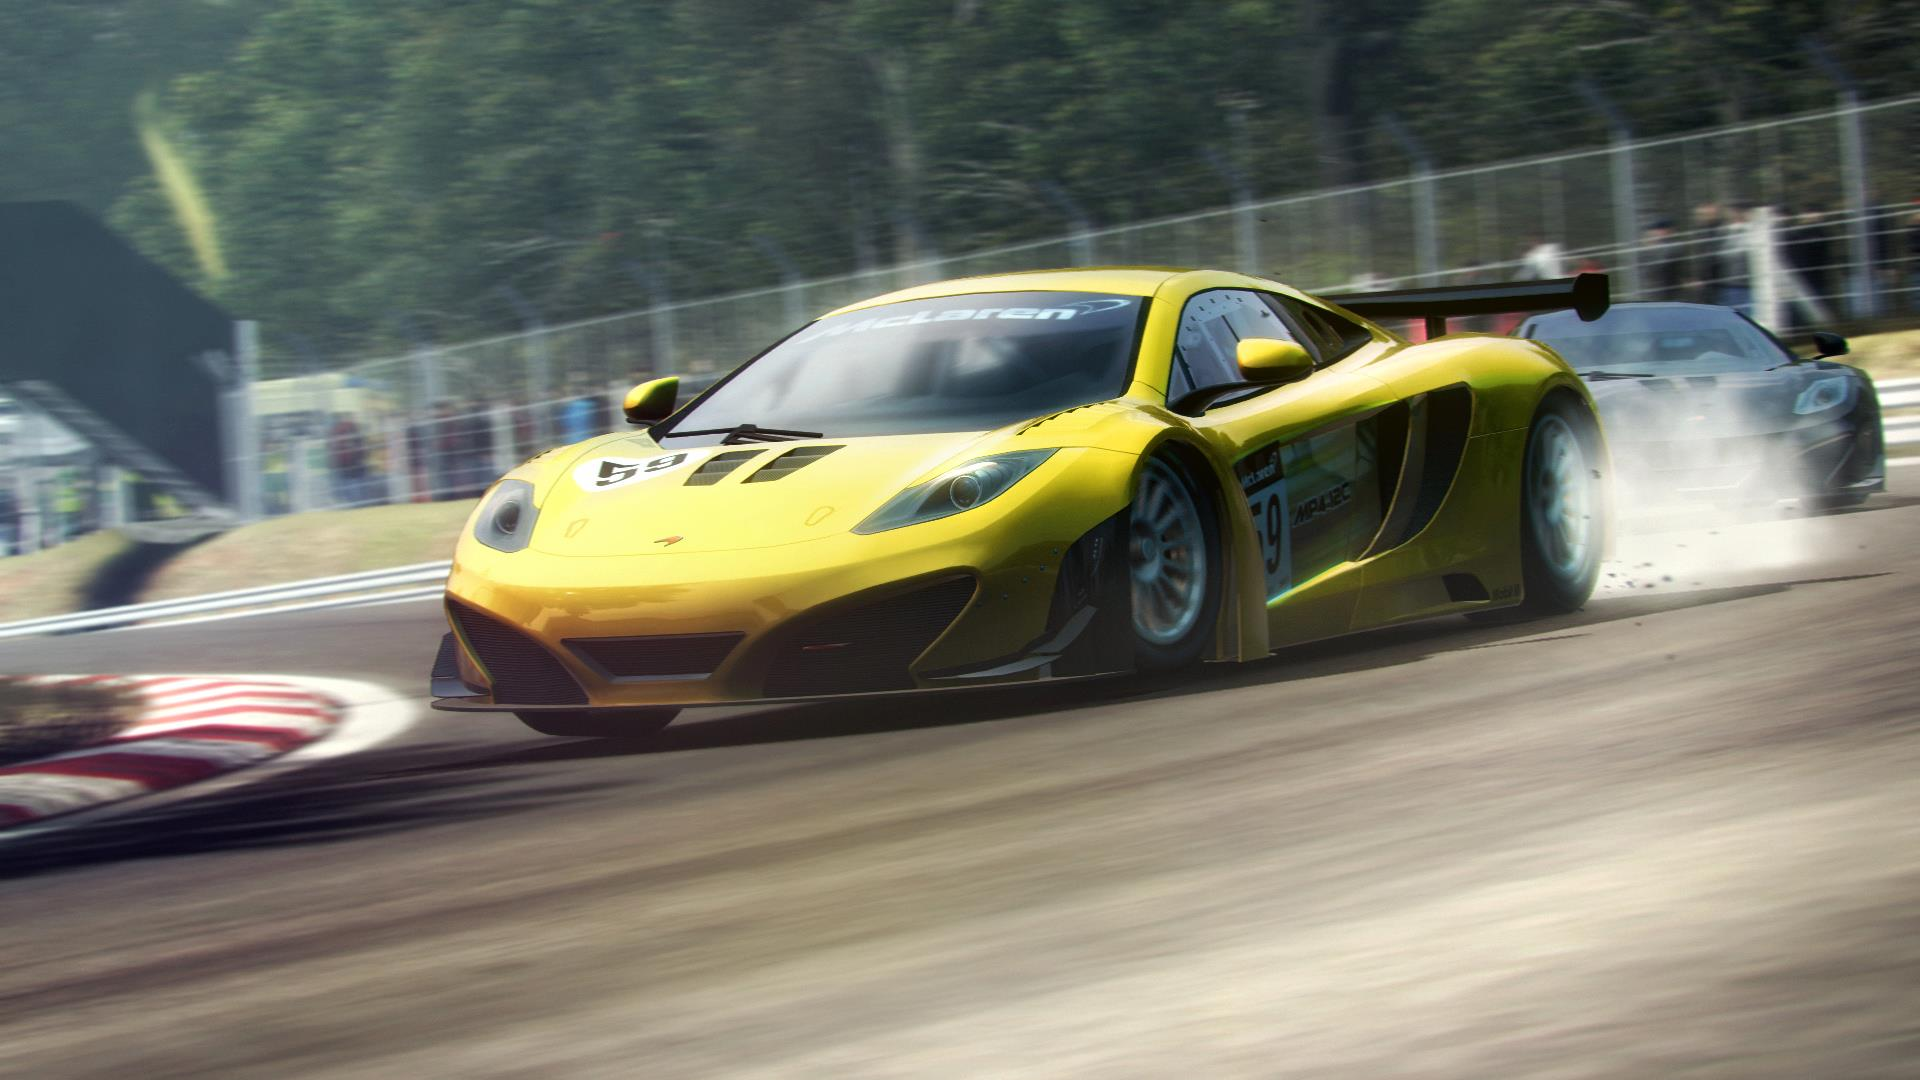 Top Upcoming PC Games of 2013 - Grid 2